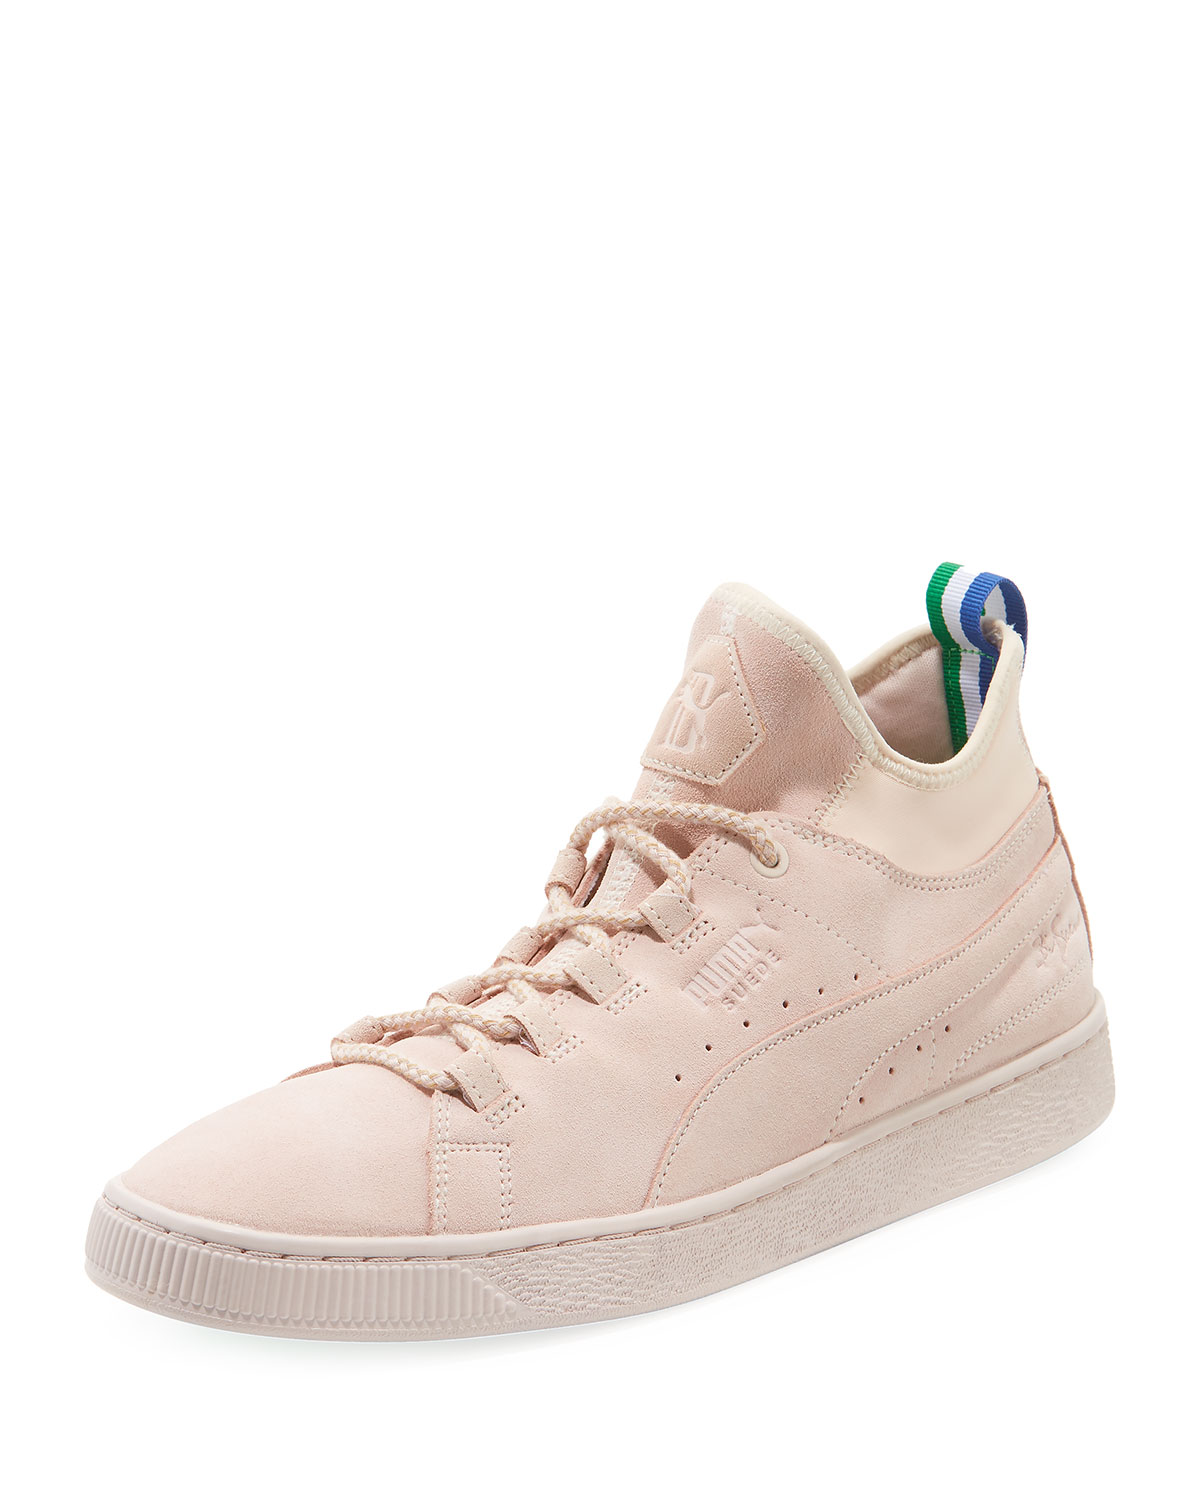 lowest price e087a 36b29 Men's x Big Sean Suede 50 Mid-Top Sneakers